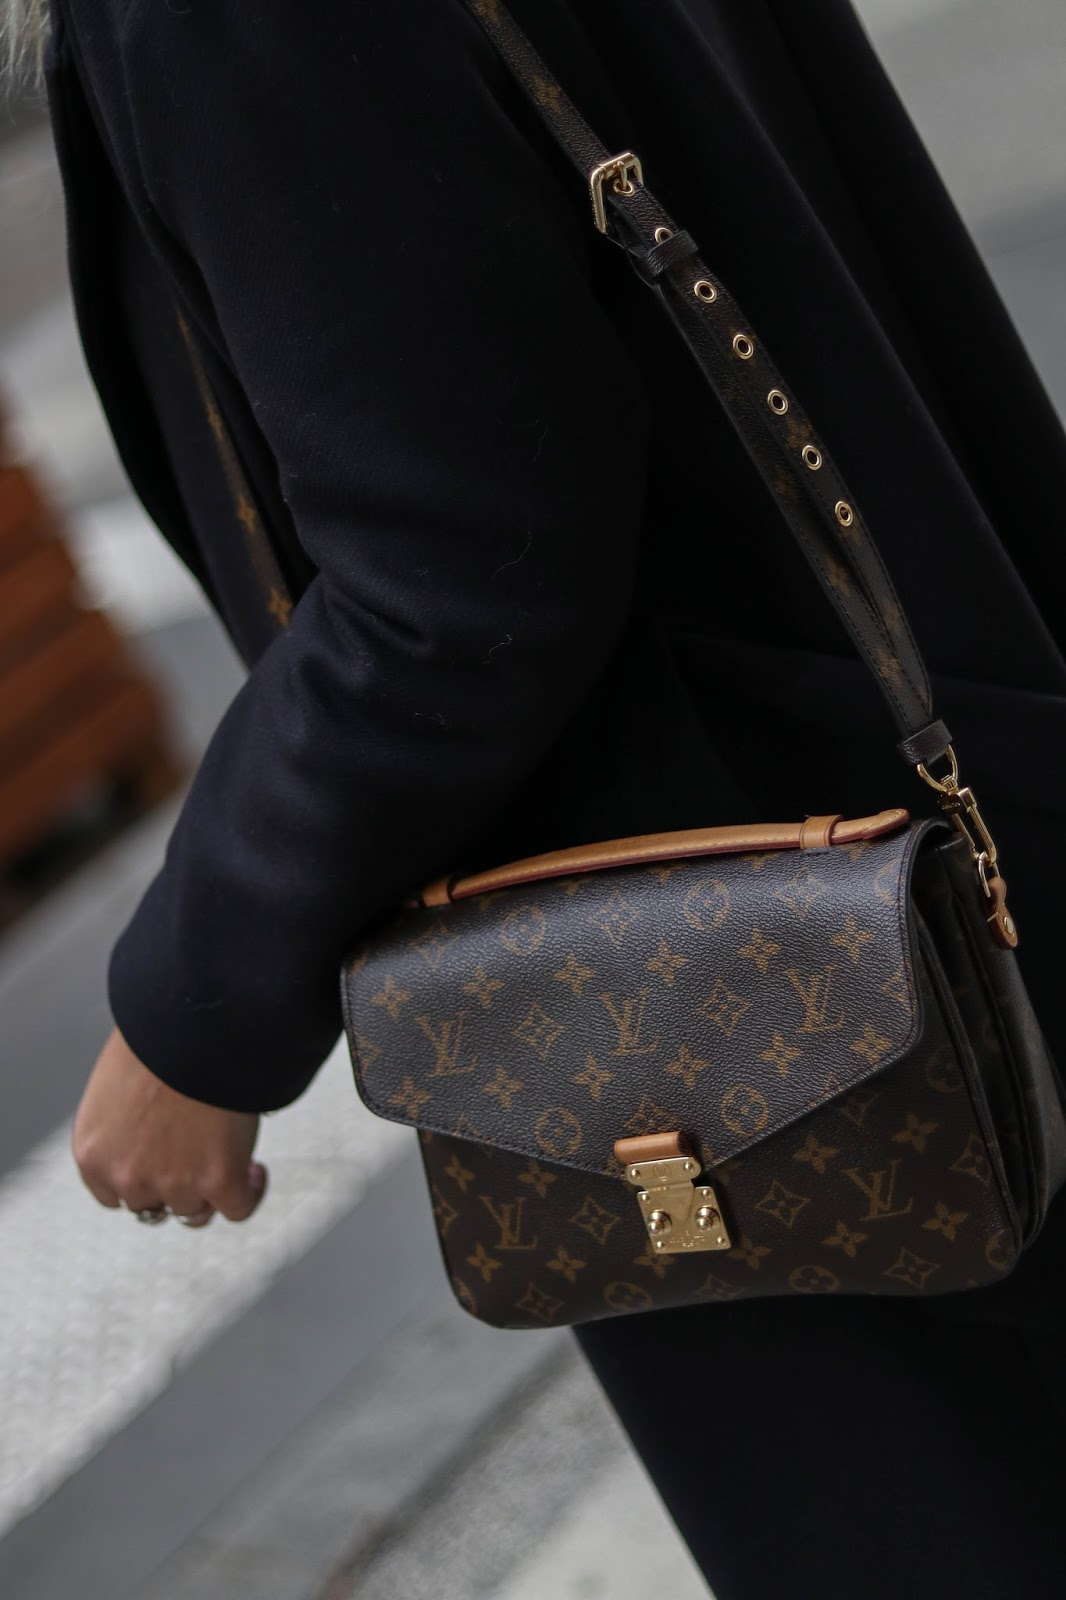 sac louis vuitton metis parisgrenoble